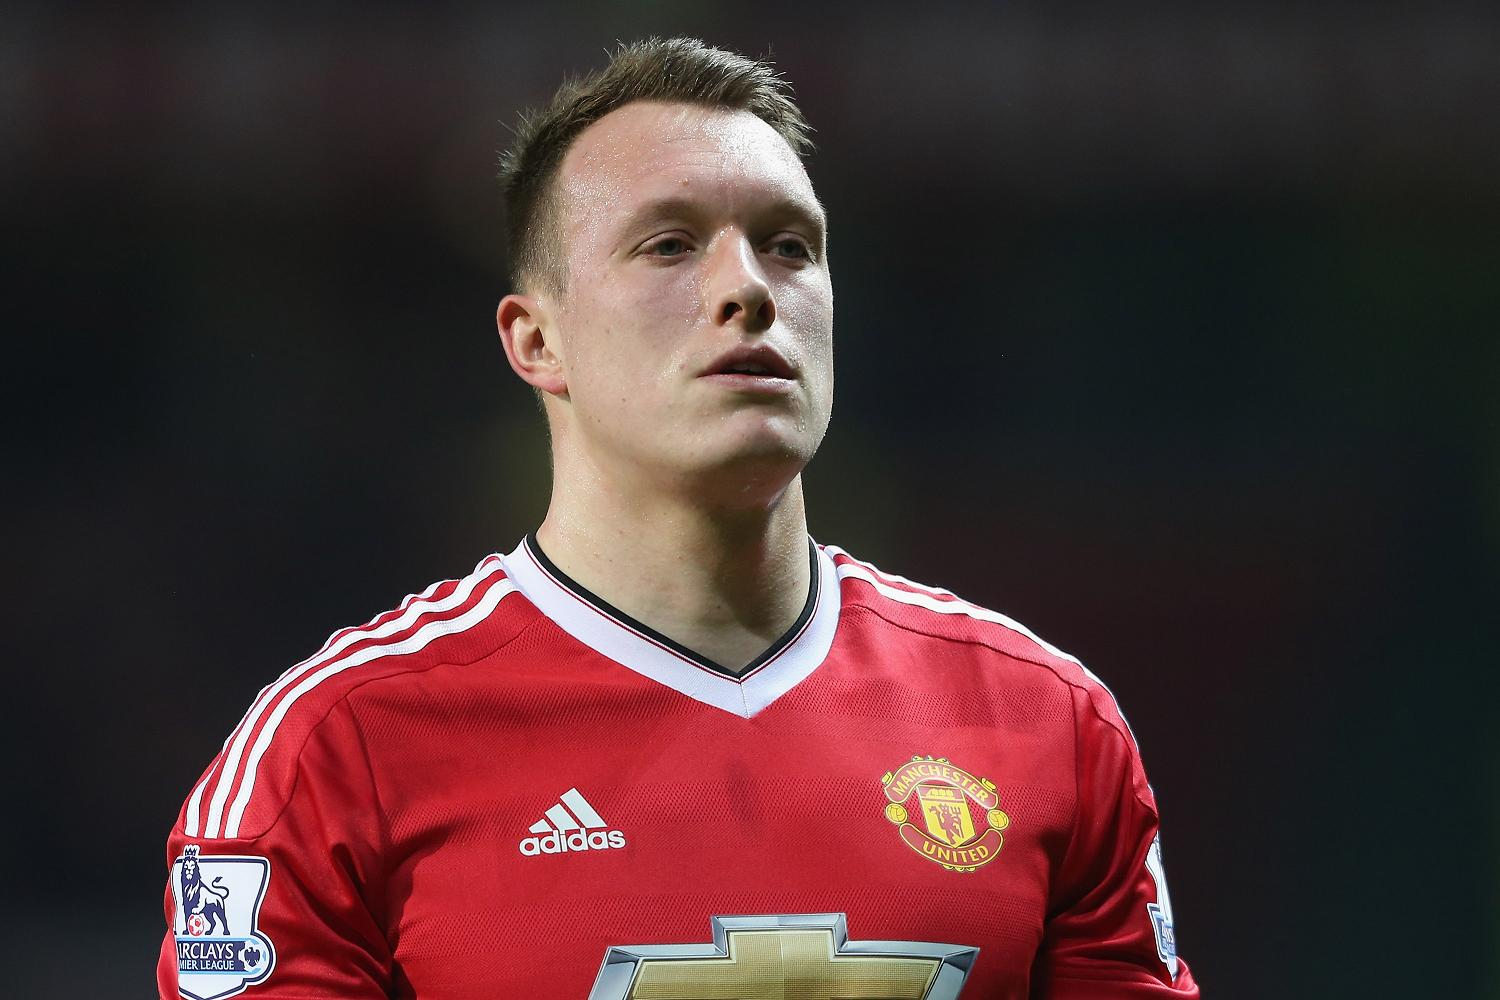 Phil Jones has been assured he has a future at Man United by Jose Mourinho